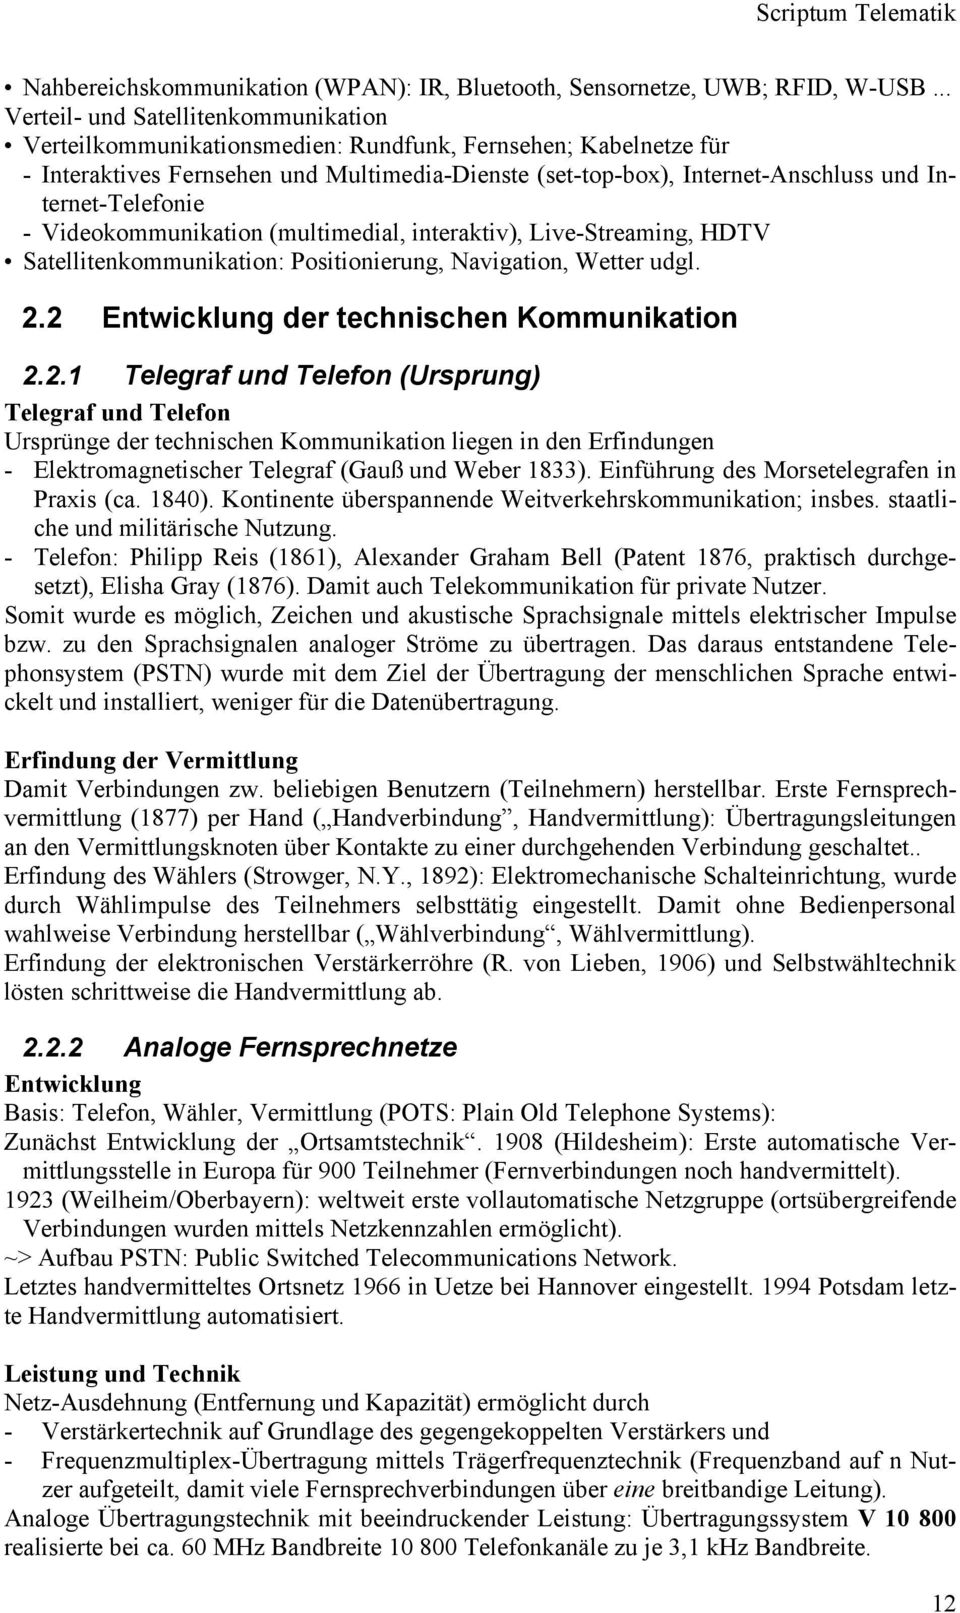 Internet-Telefonie - Videokommunikation (multimedial, interaktiv), Live-Streaming, HDTV Satellitenkommunikation: Positionierung, Navigation, Wetter udgl. 2.